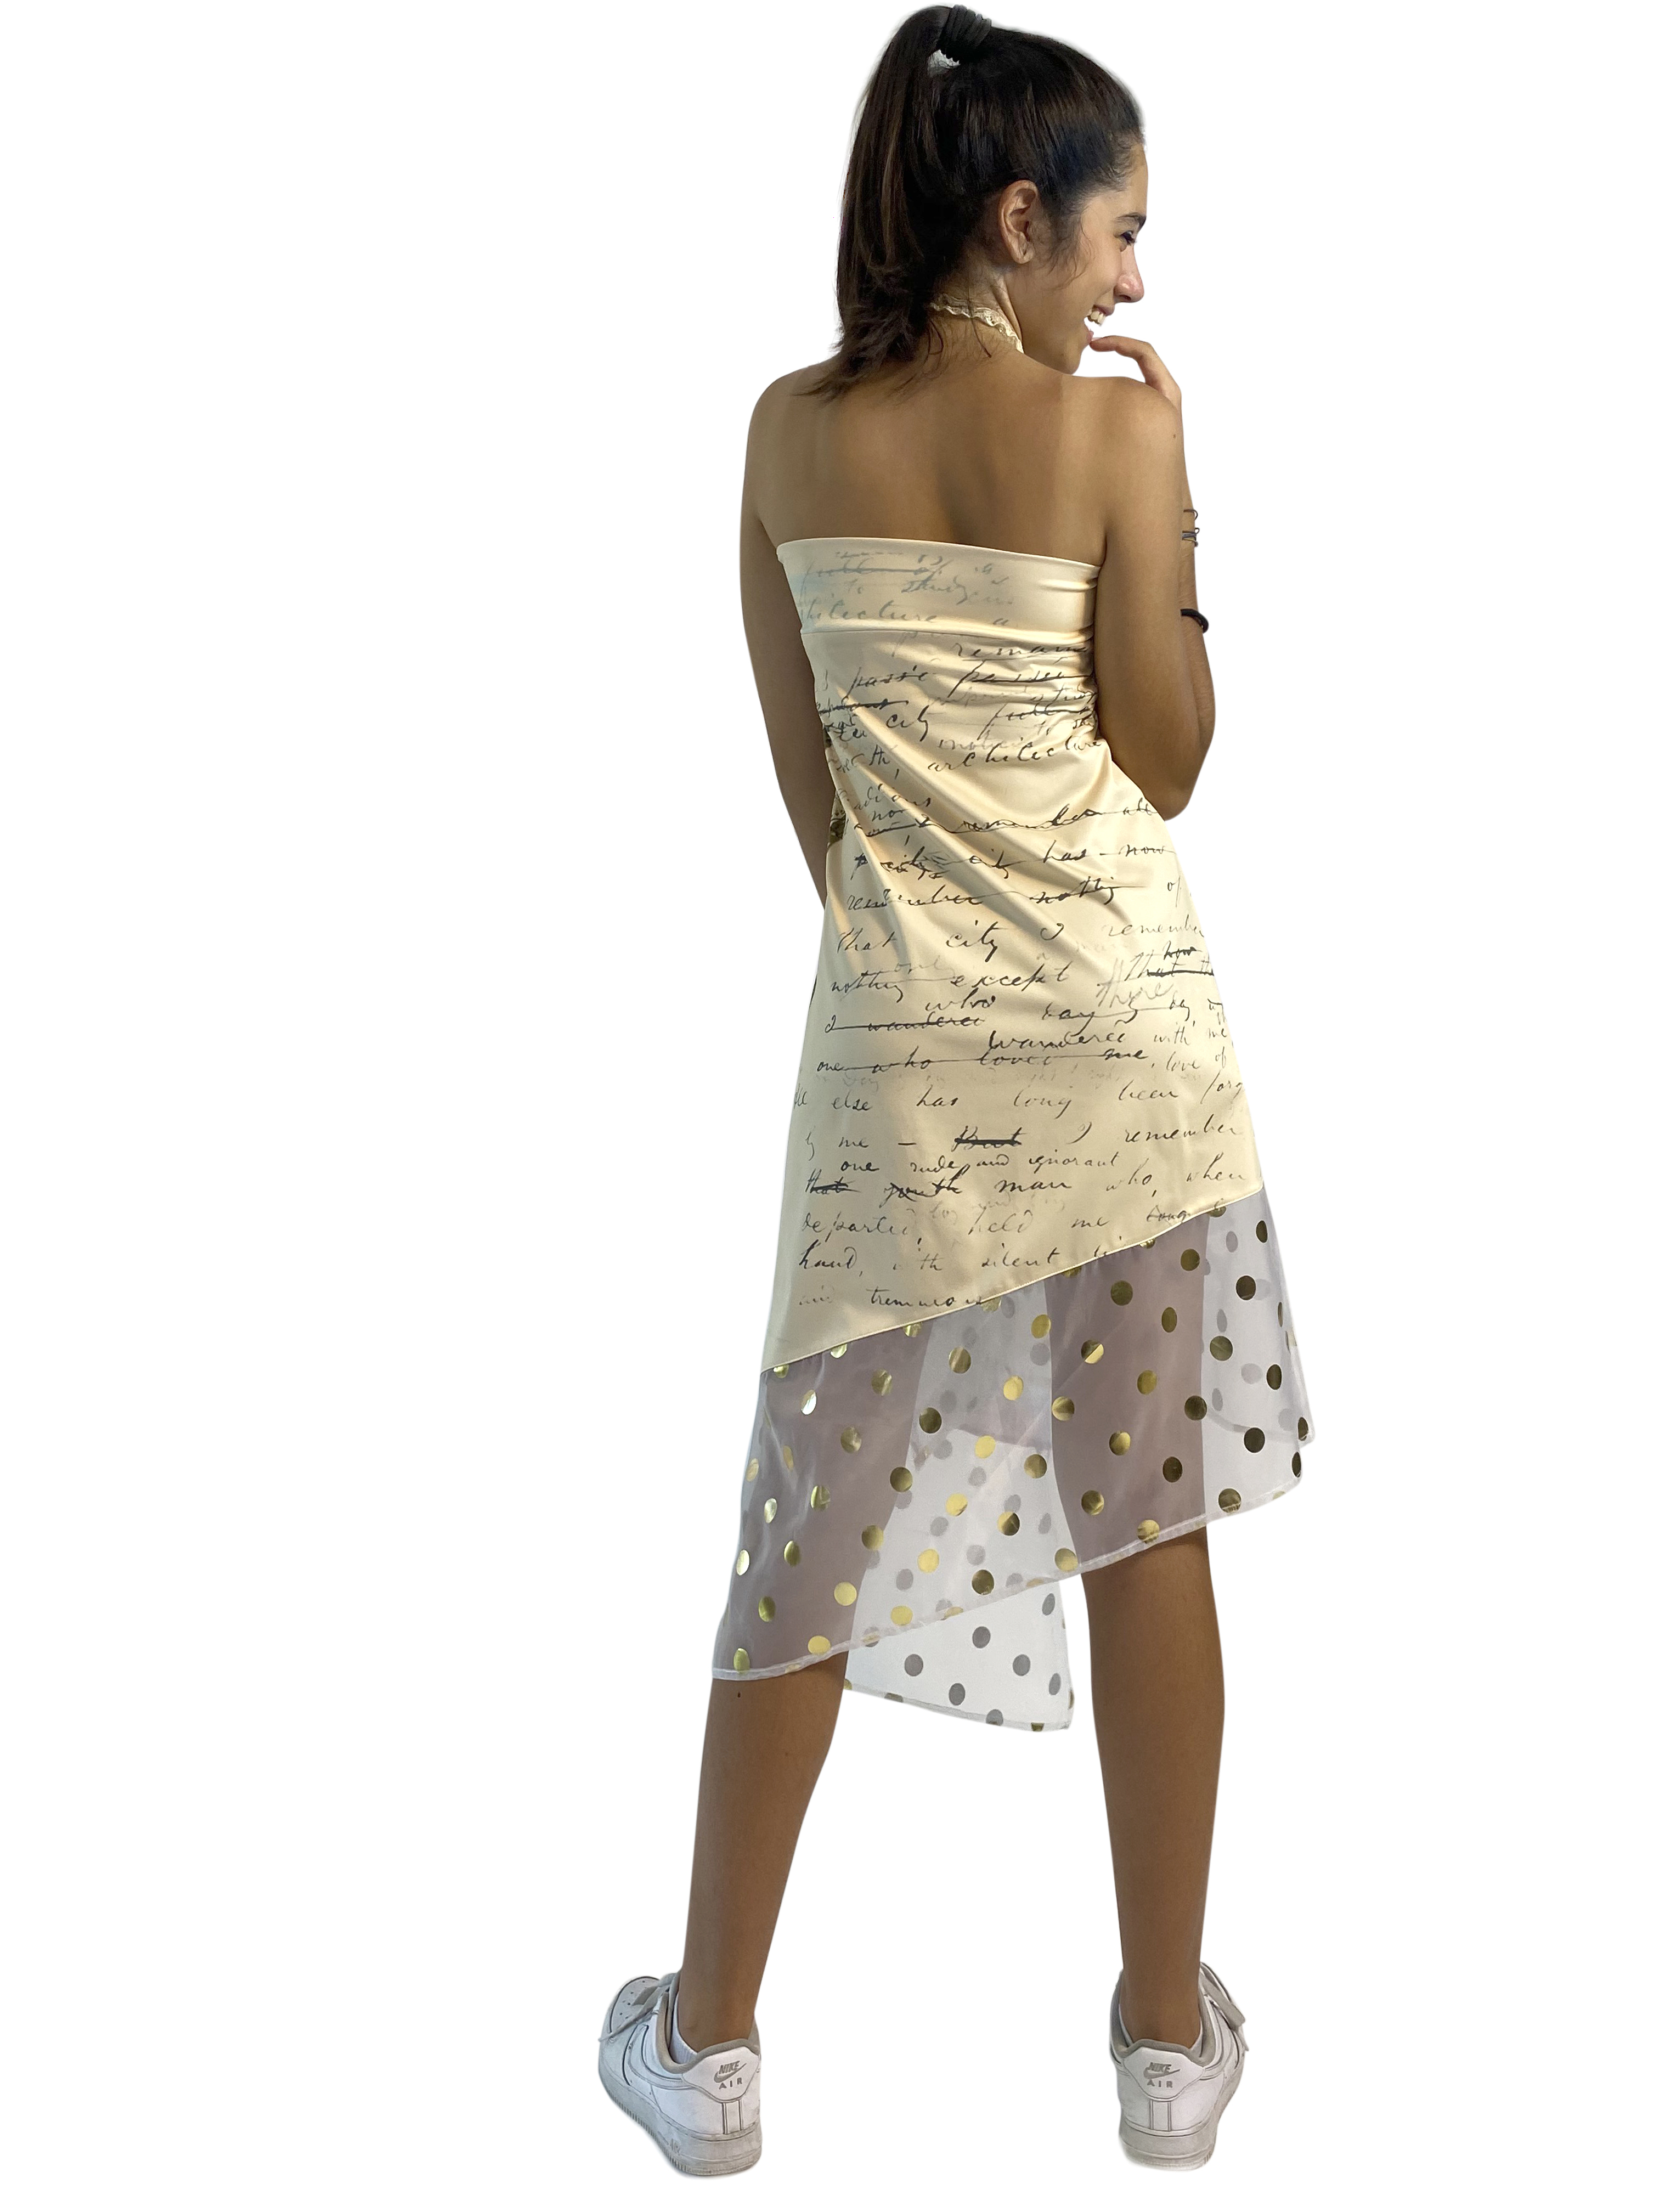 IPNG: If I Was Dancing In Paris Layered Tied Skirt/Dress